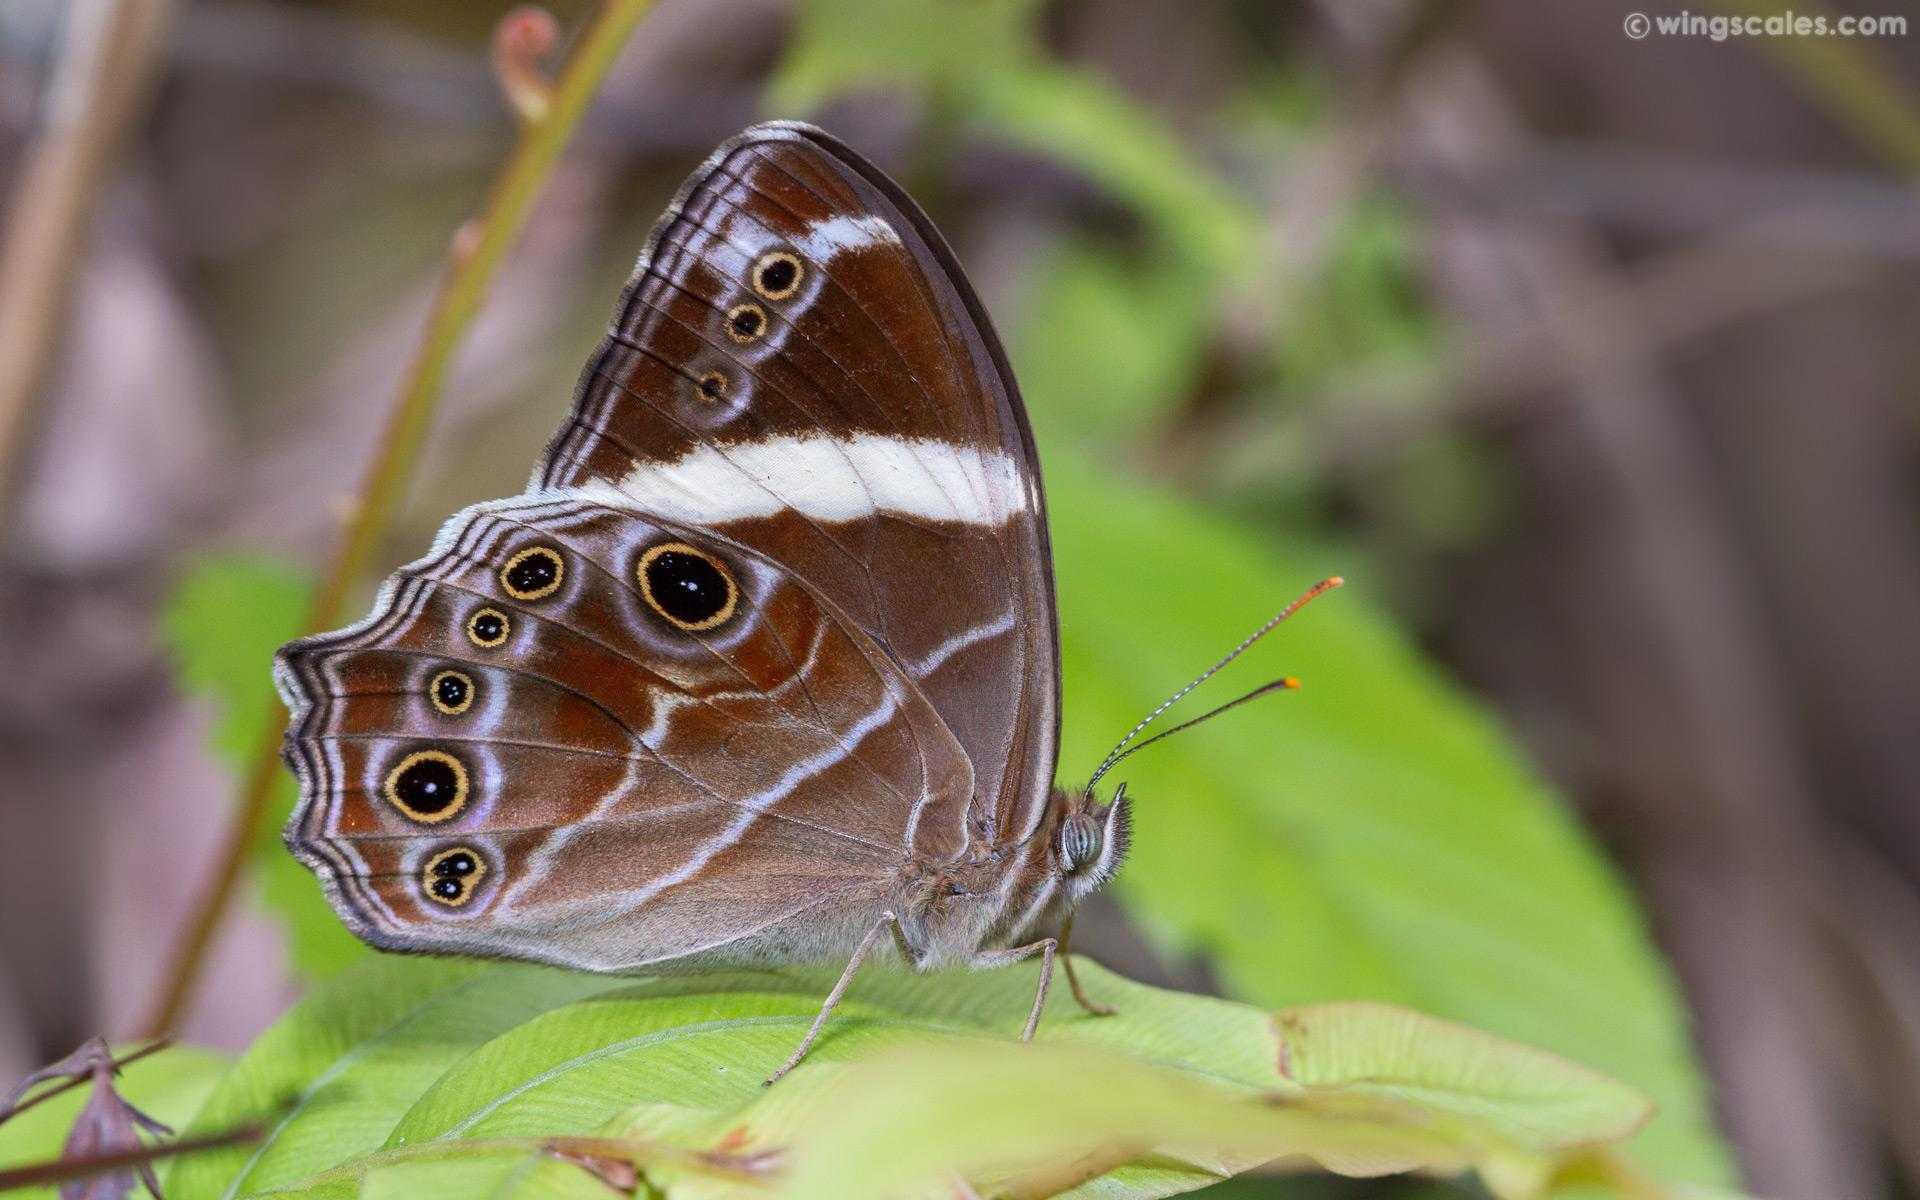 Lethe confuse confuse : Banded Treebrown (ผีเสื้อเลอะเทอะลายแถบ)